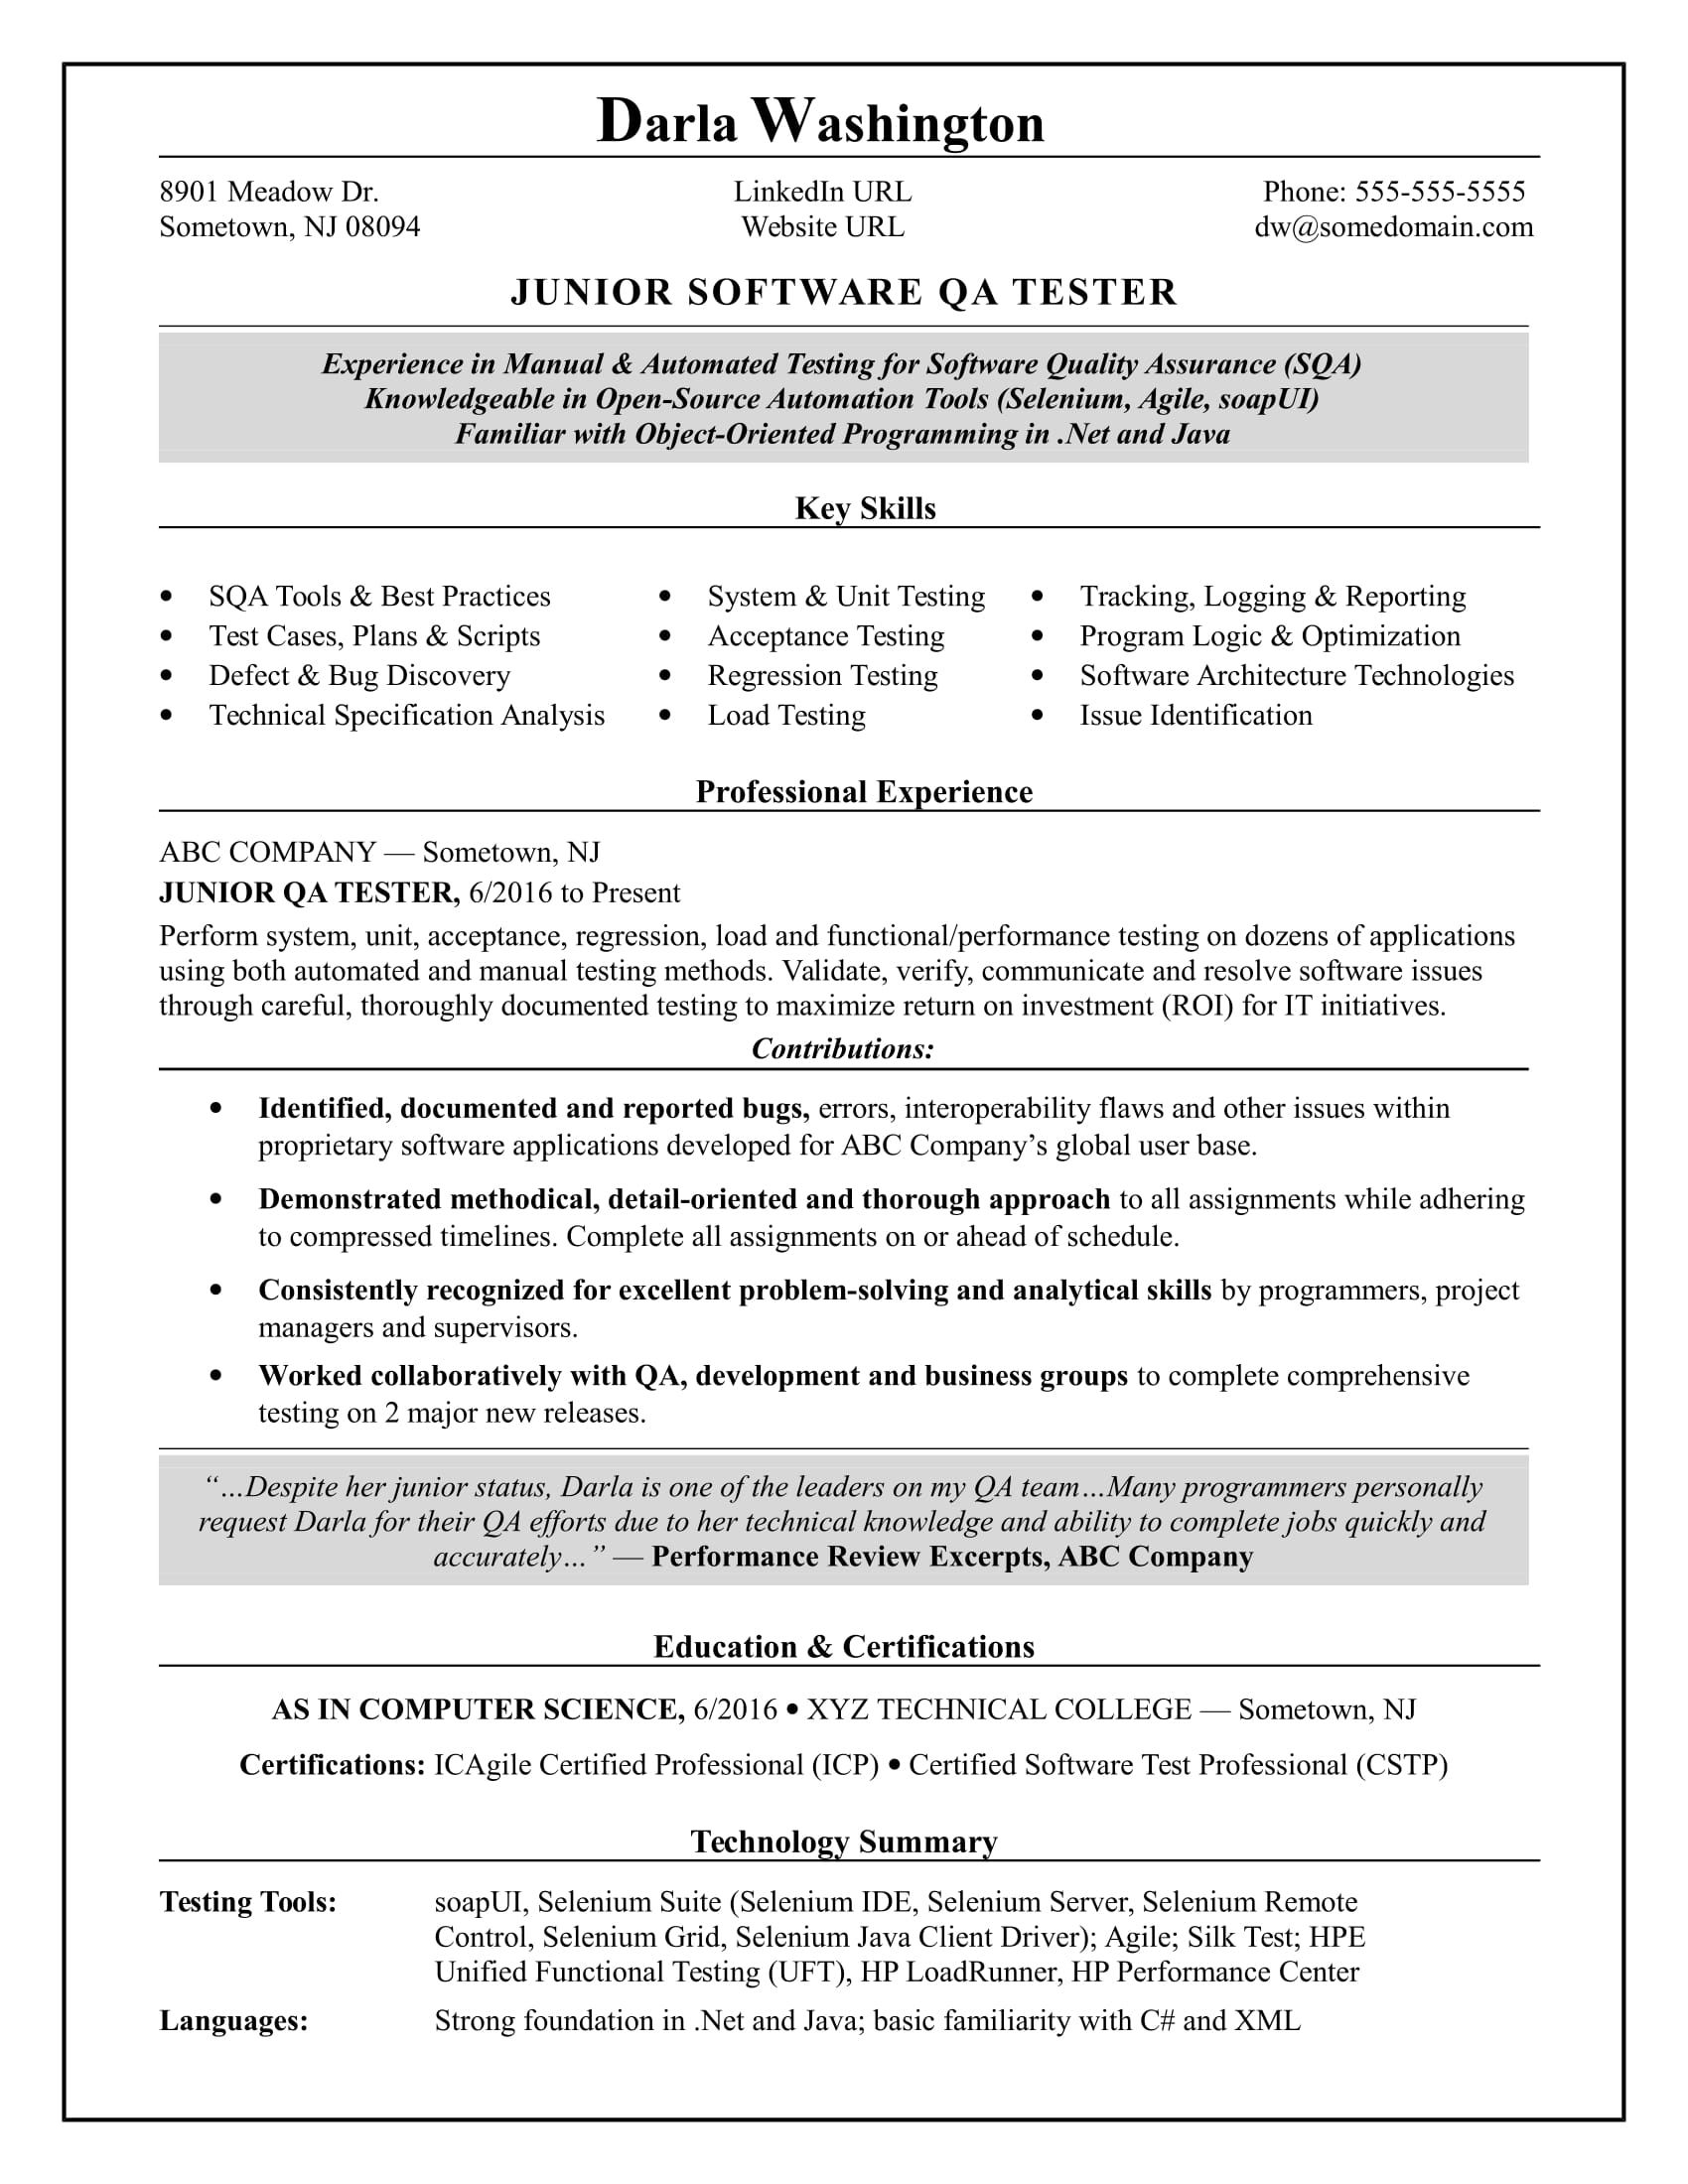 Beau Entry Level QA Software Tester Resume Sample